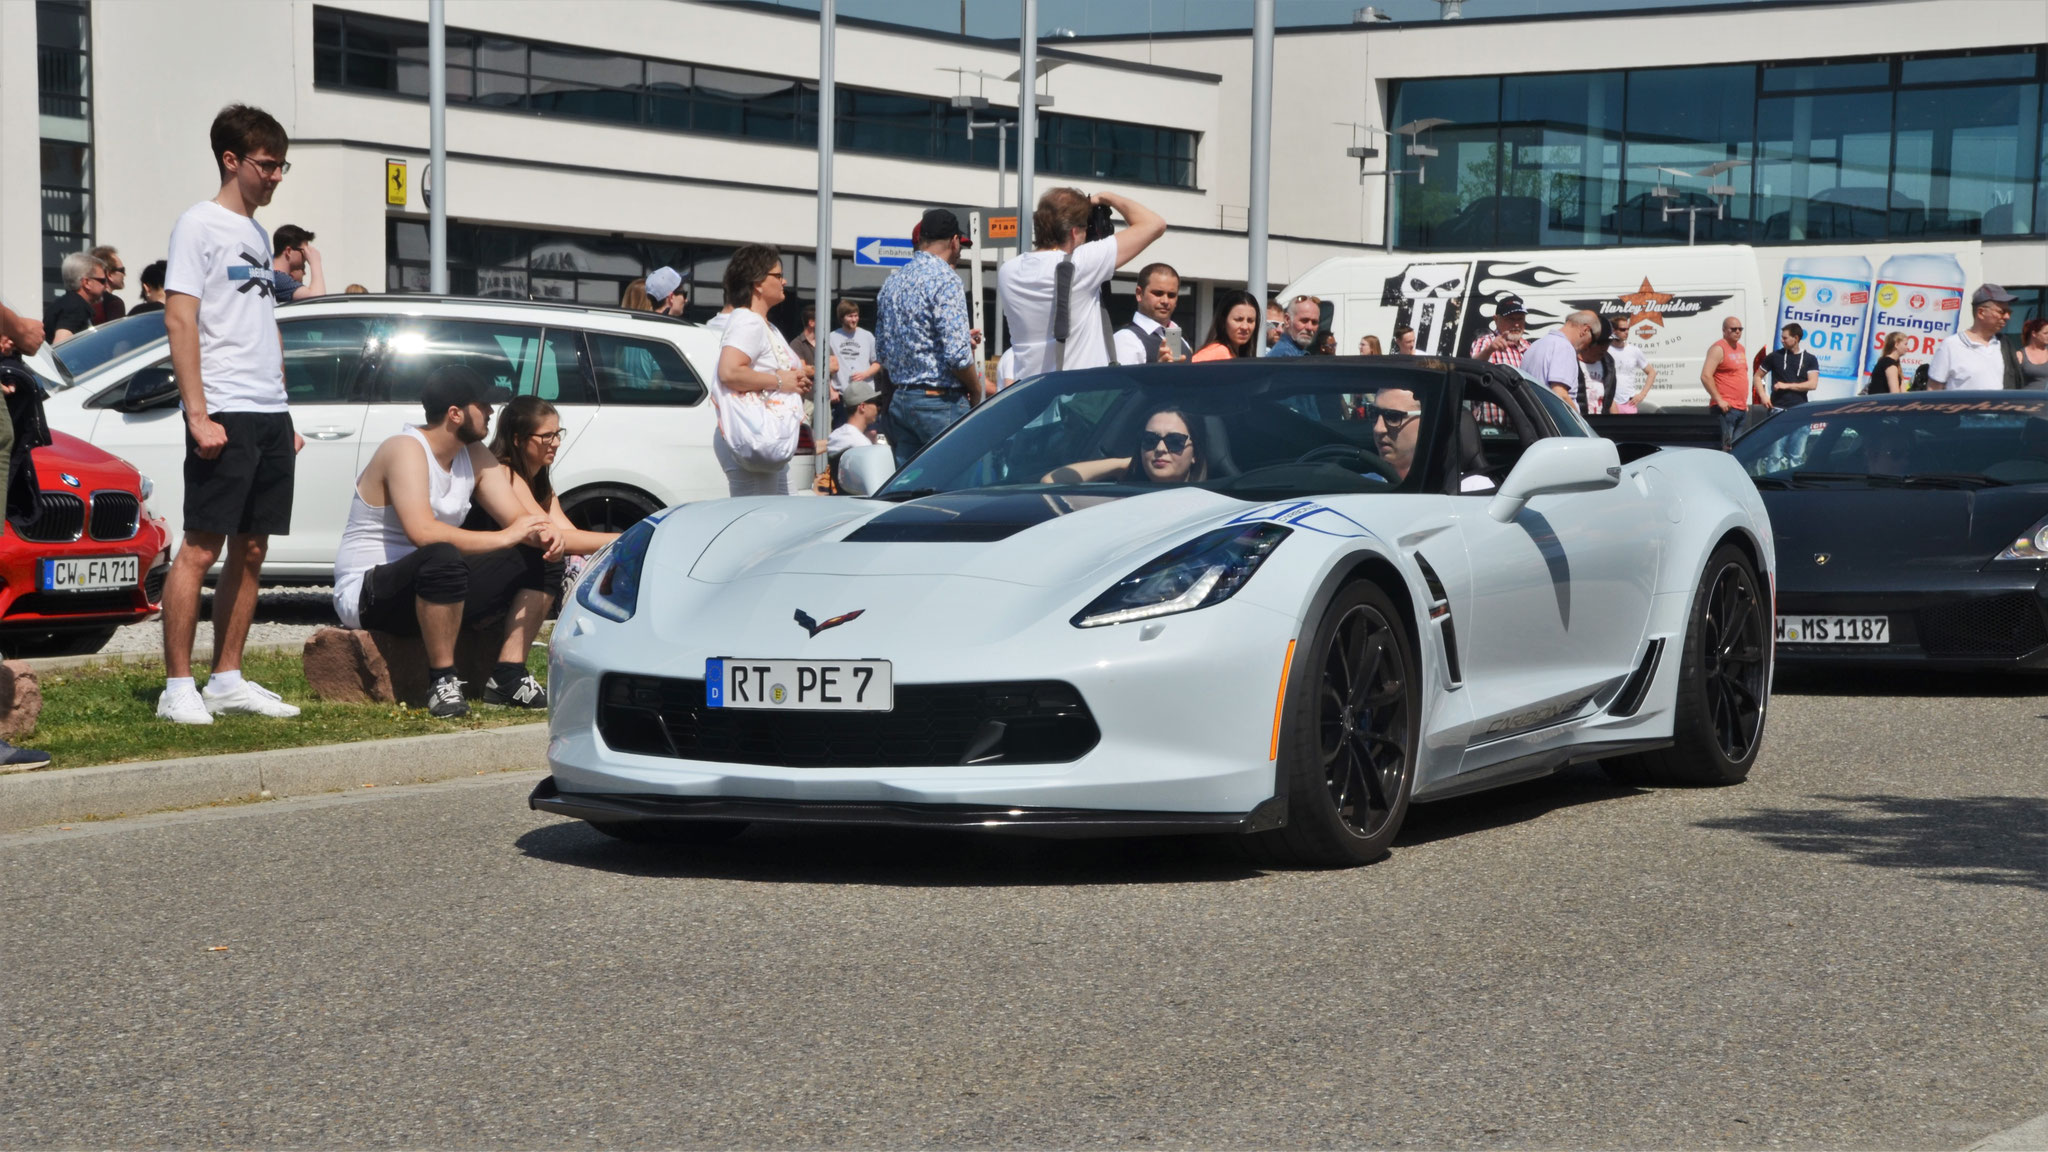 Chevrolet Corvette C7  Grand Sport - RT-PE-7